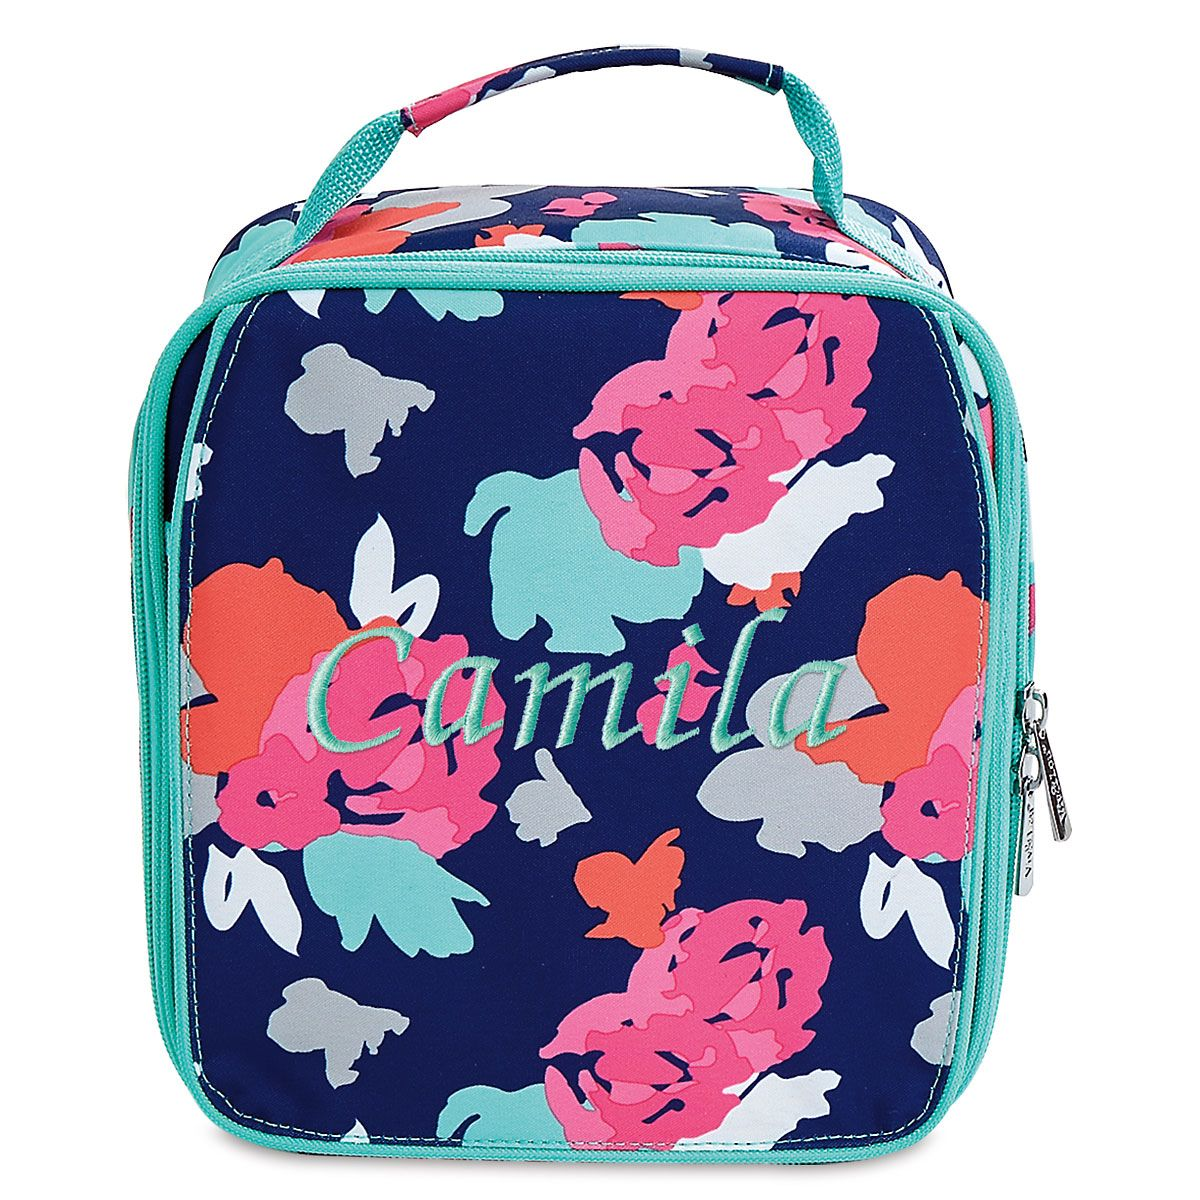 Personalized Amelia Lunch Bag – Name